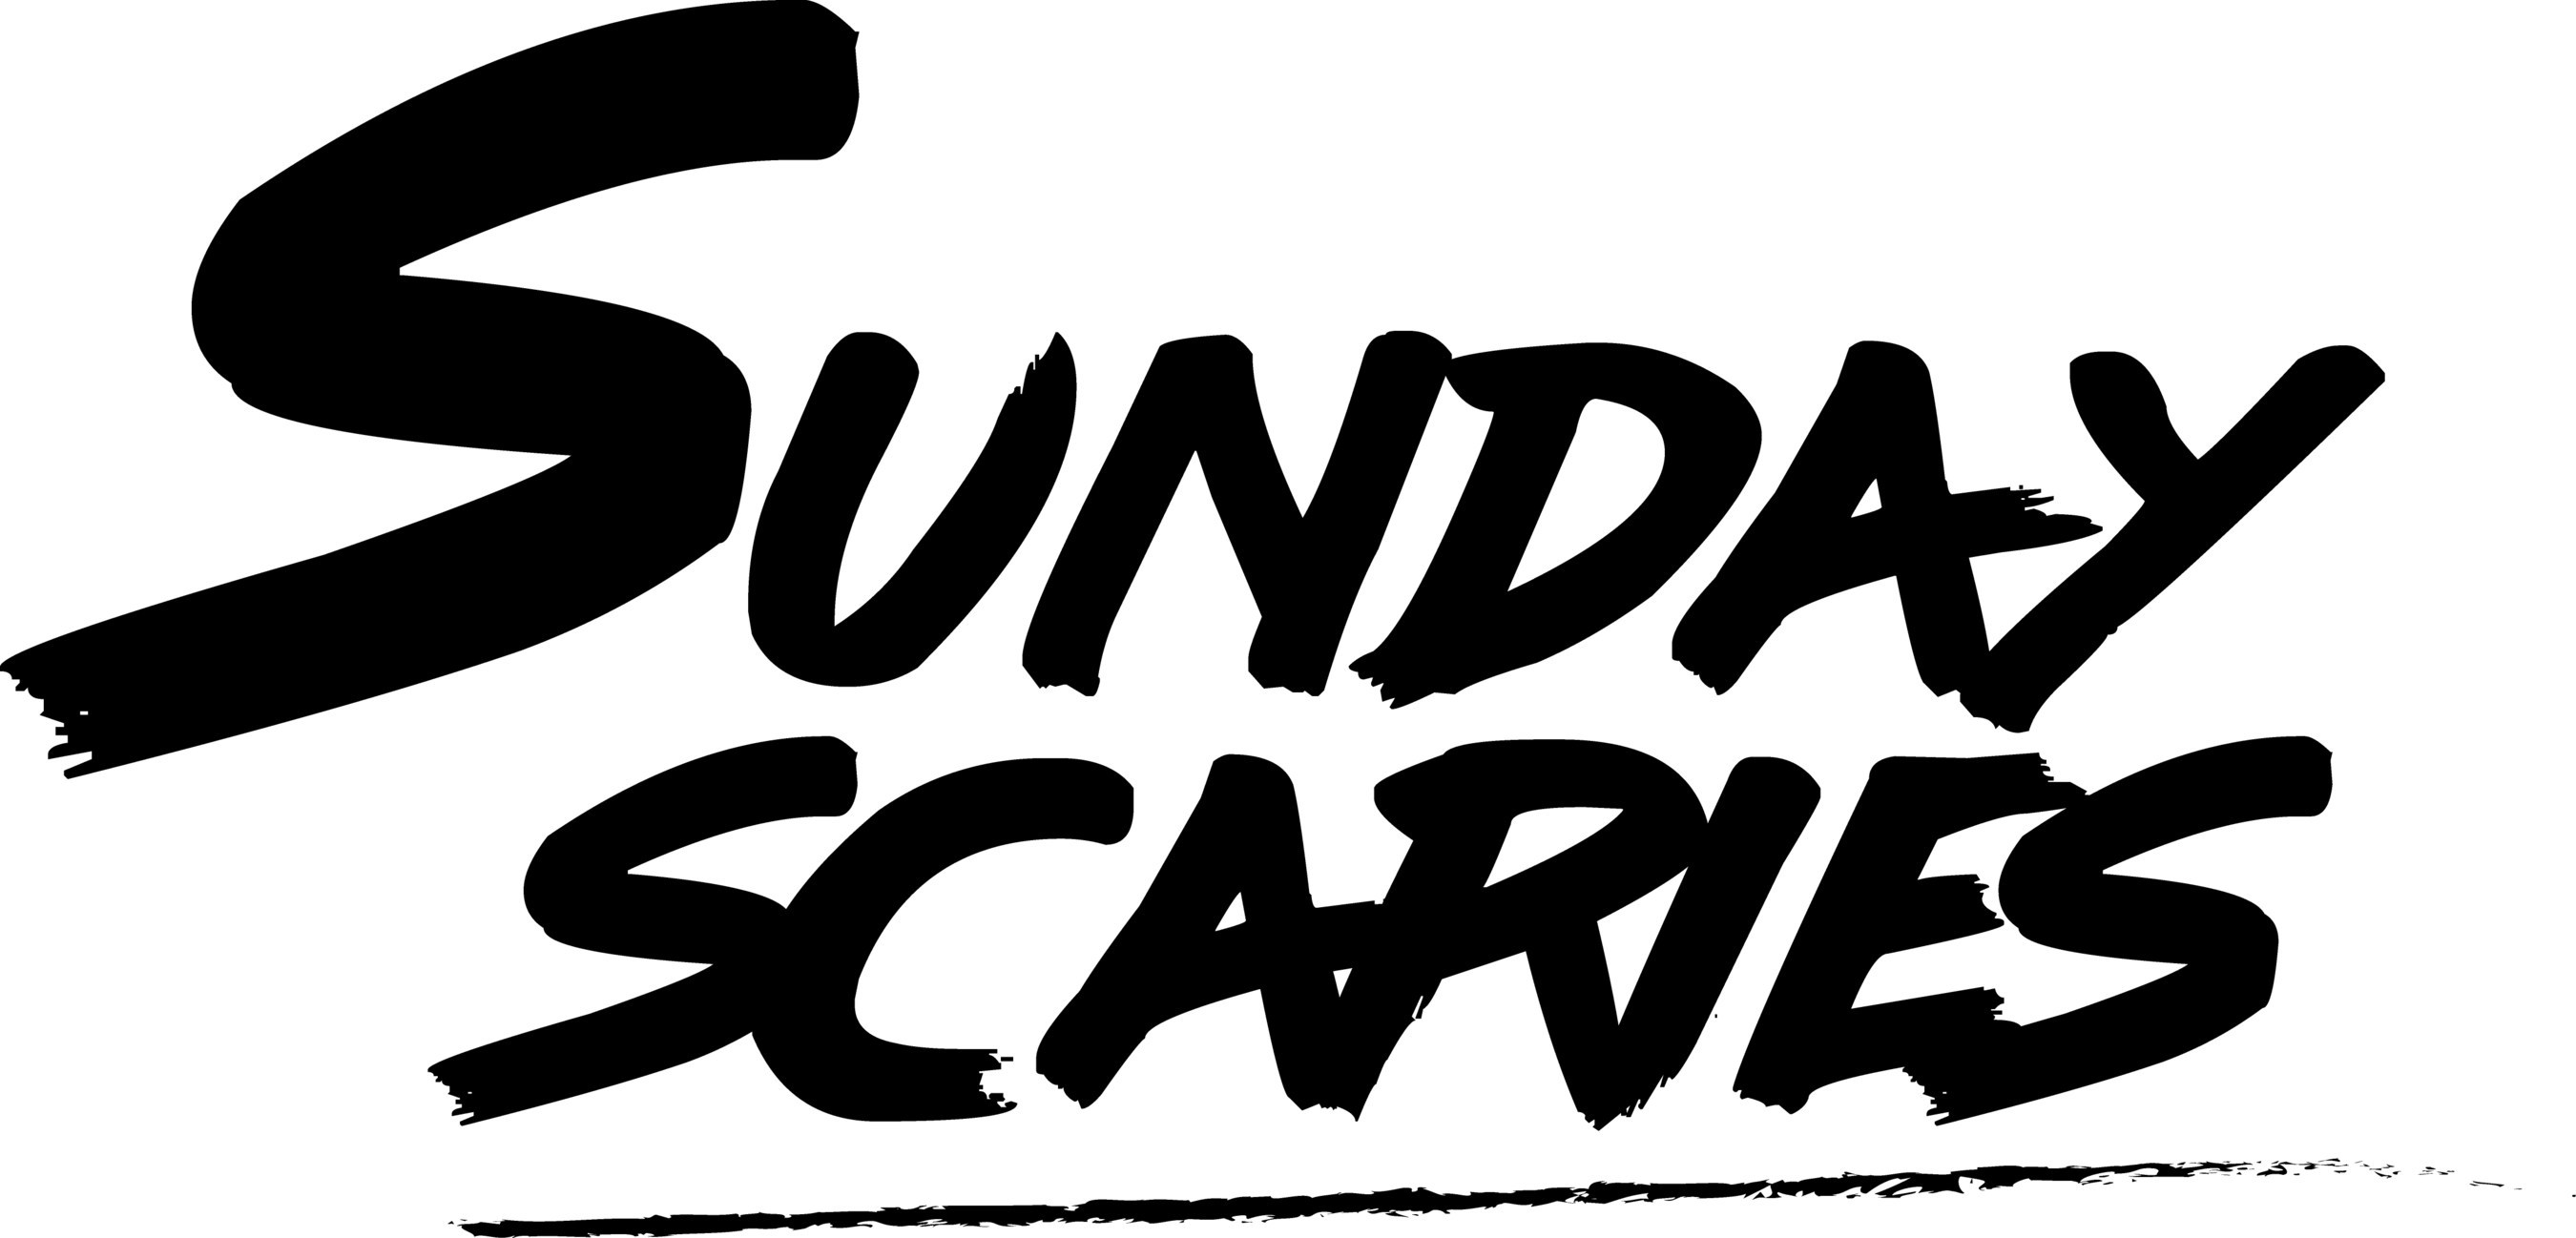 25% Off Sunday Scaries Coupon Code